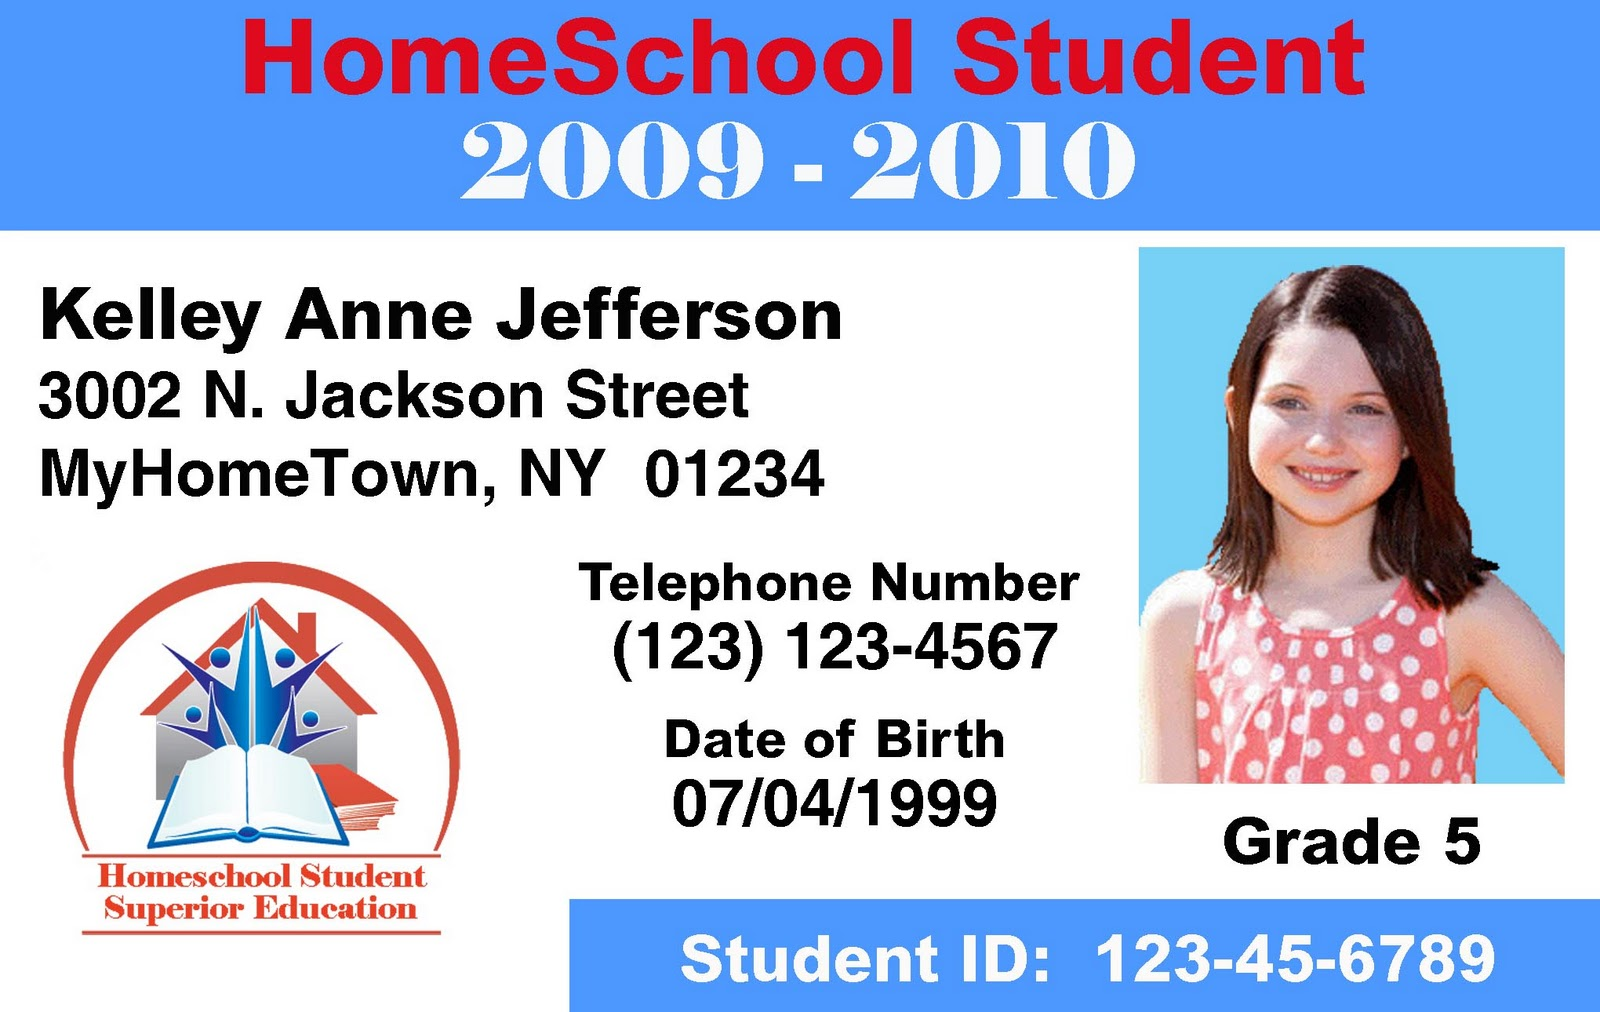 homeschool id template make id cards id card printers